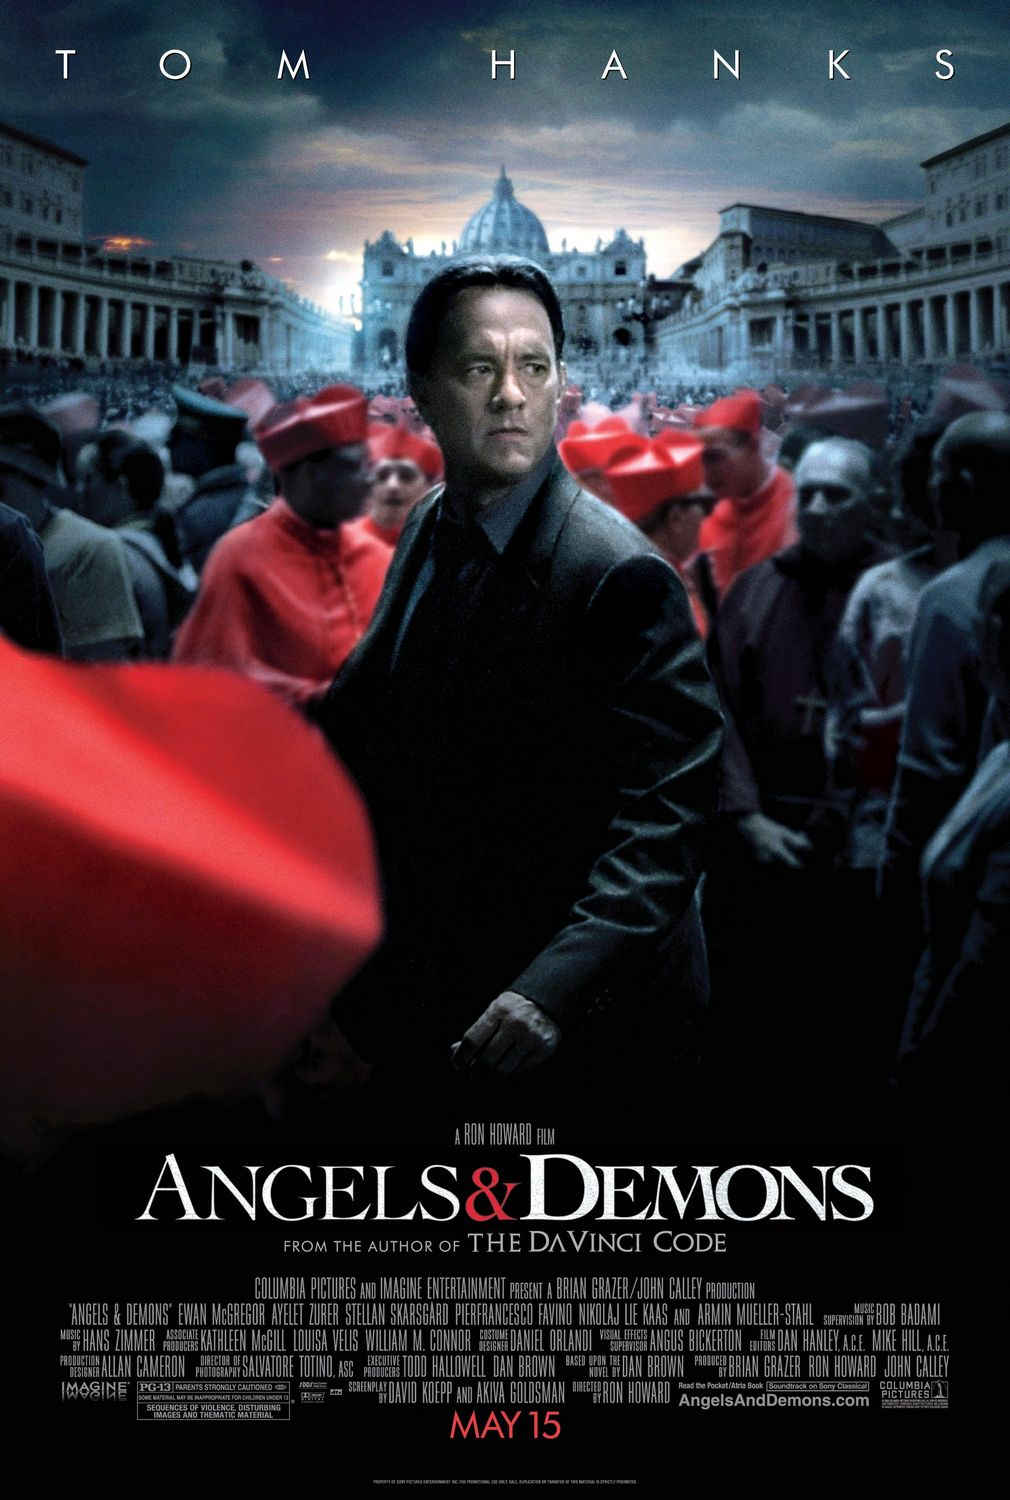 Angels & Demons YIFY subtitles